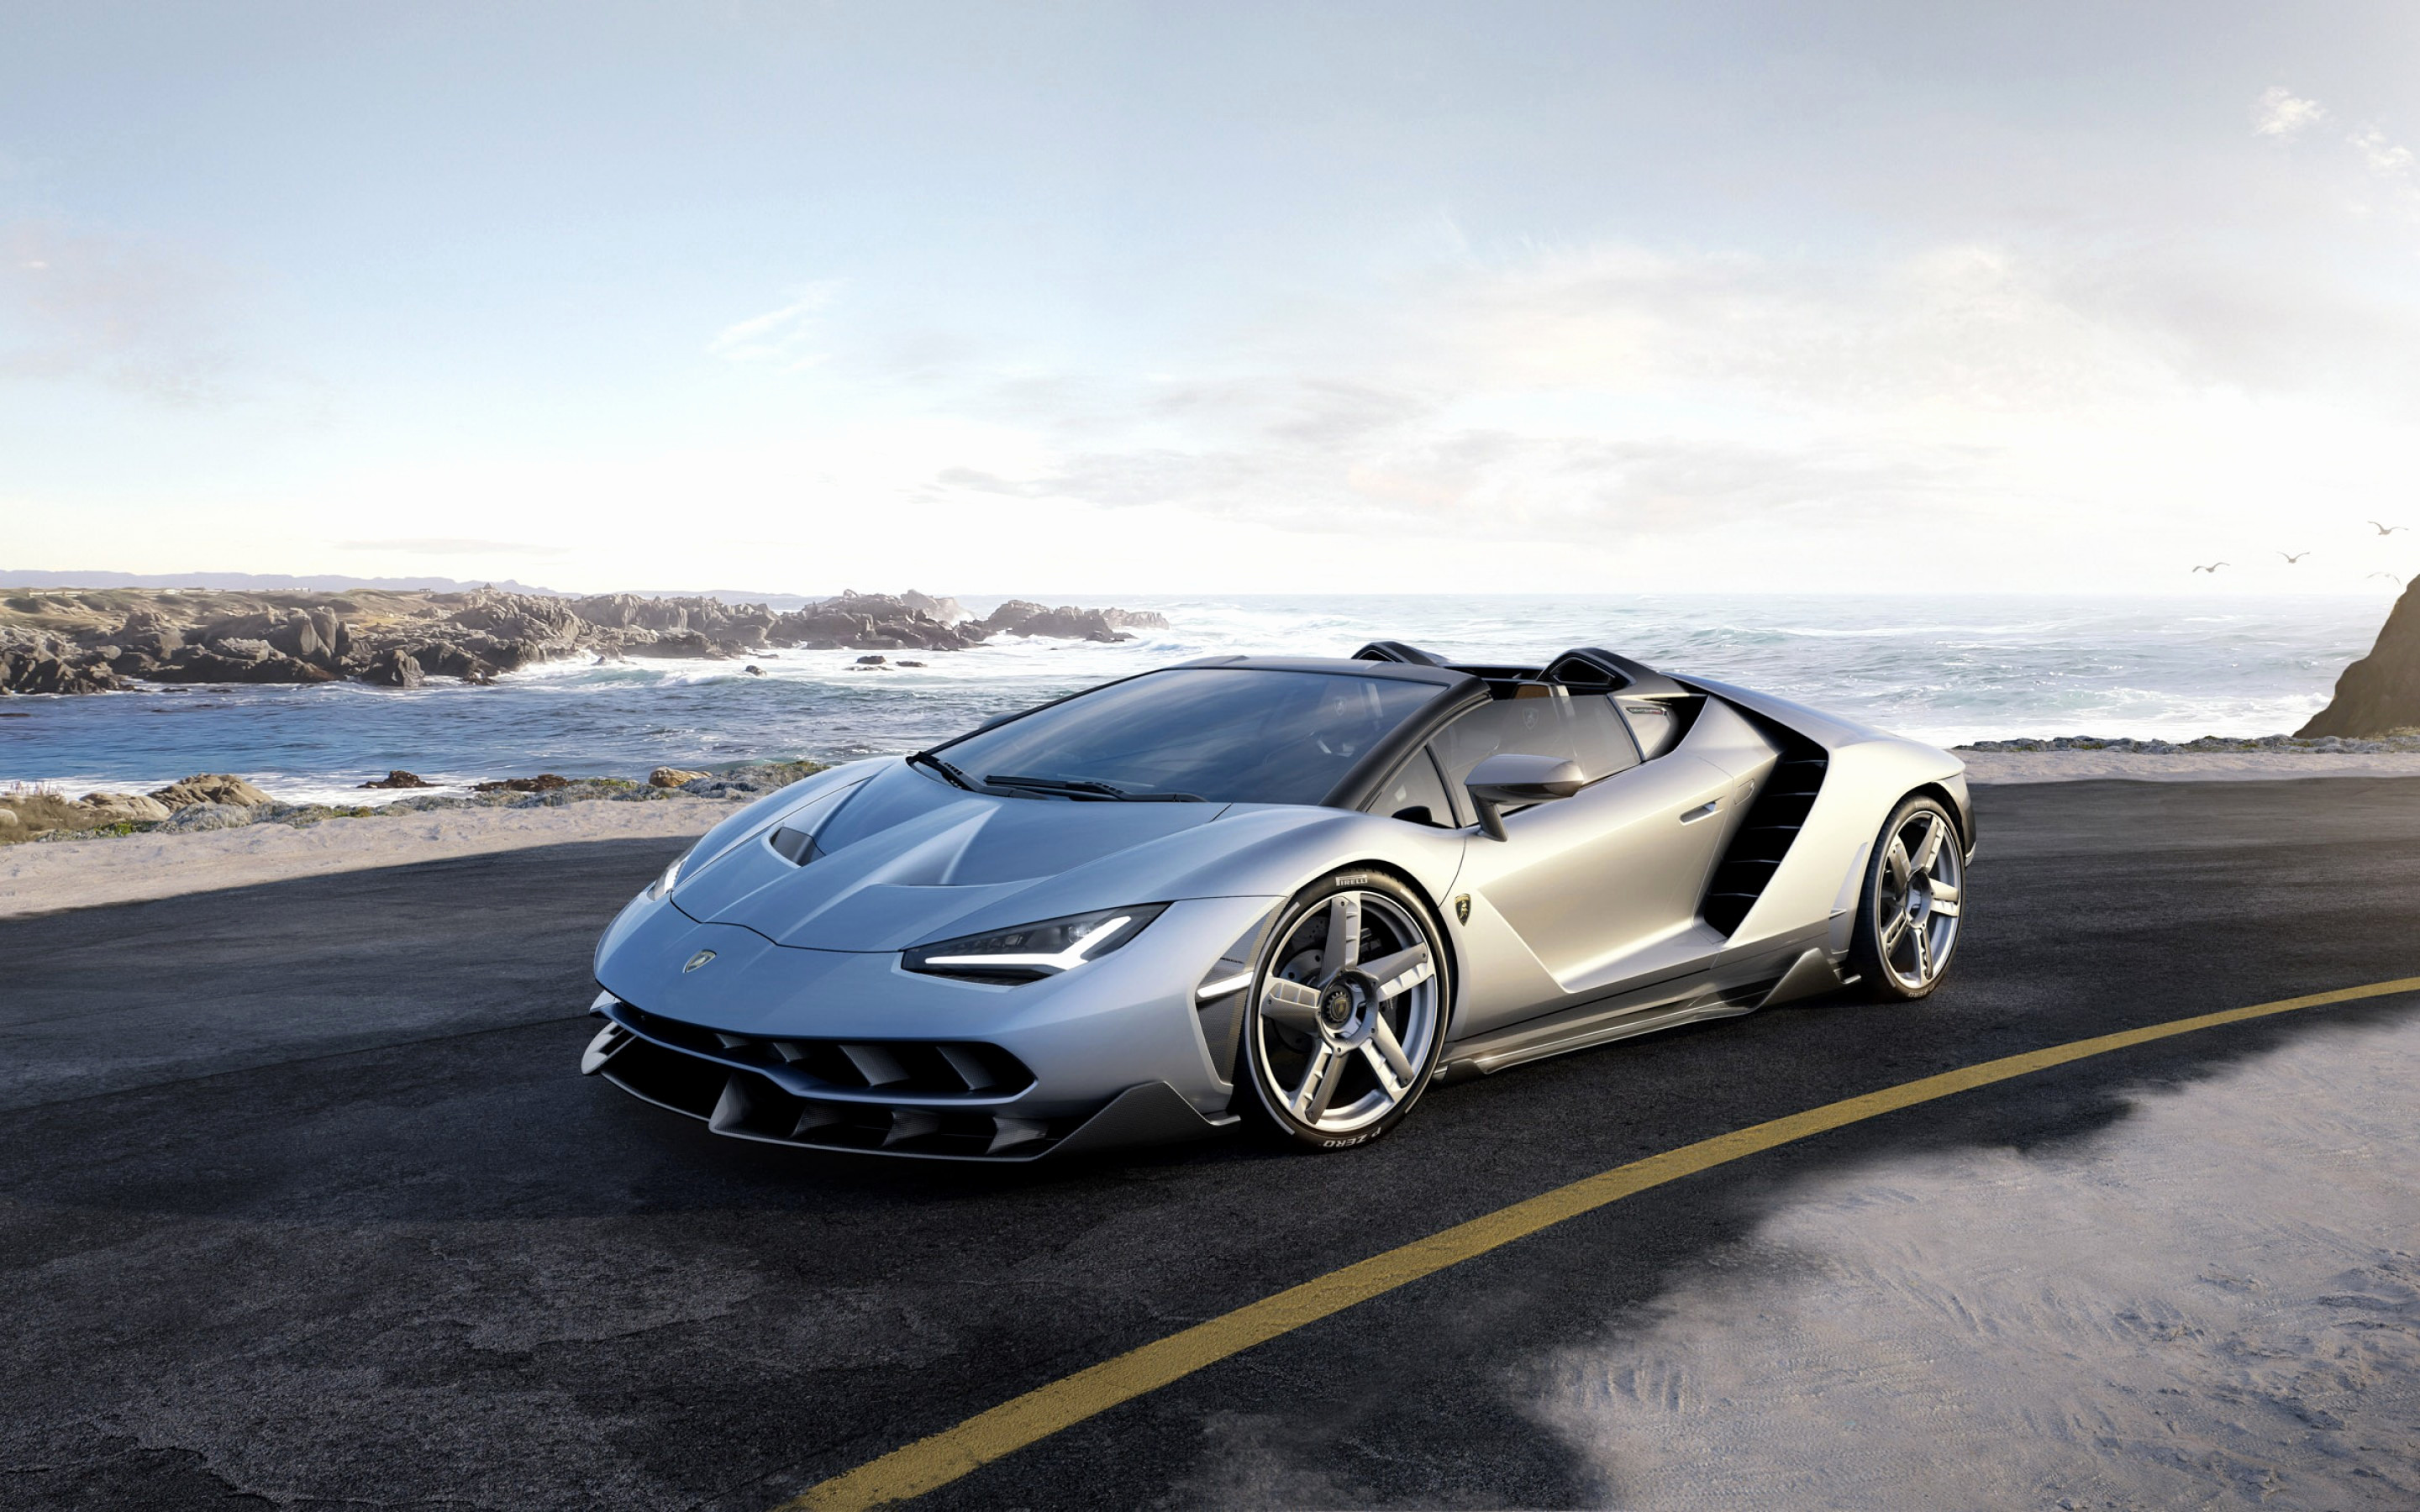 2880x1800 lamborghini centenario roadster  2017 cars luxury cars 2092 wallpaper  lamborghini ...